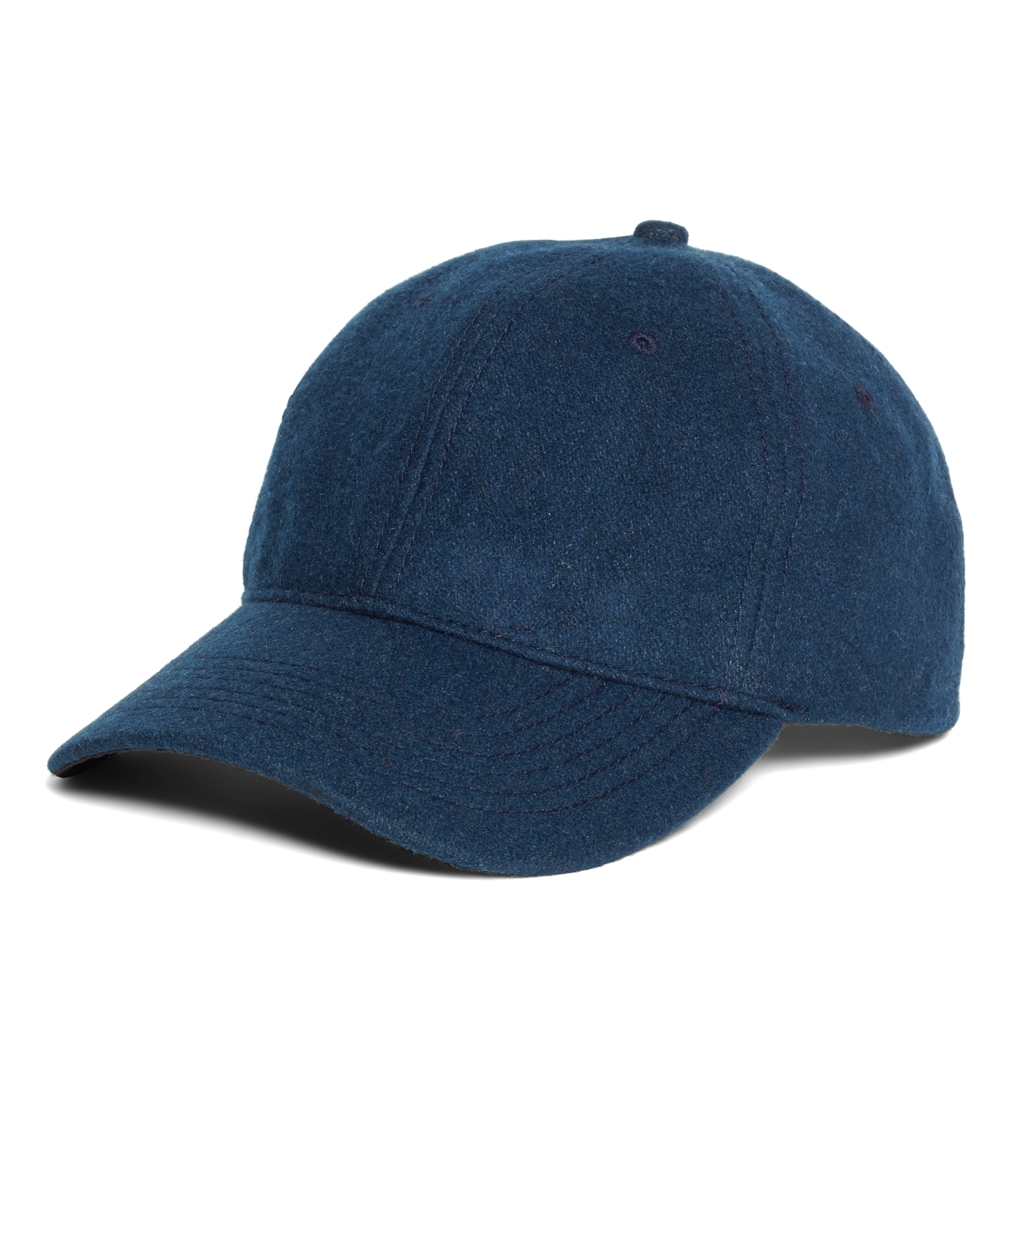 99e8f510af1c9 Men s Wool Baseball Hat